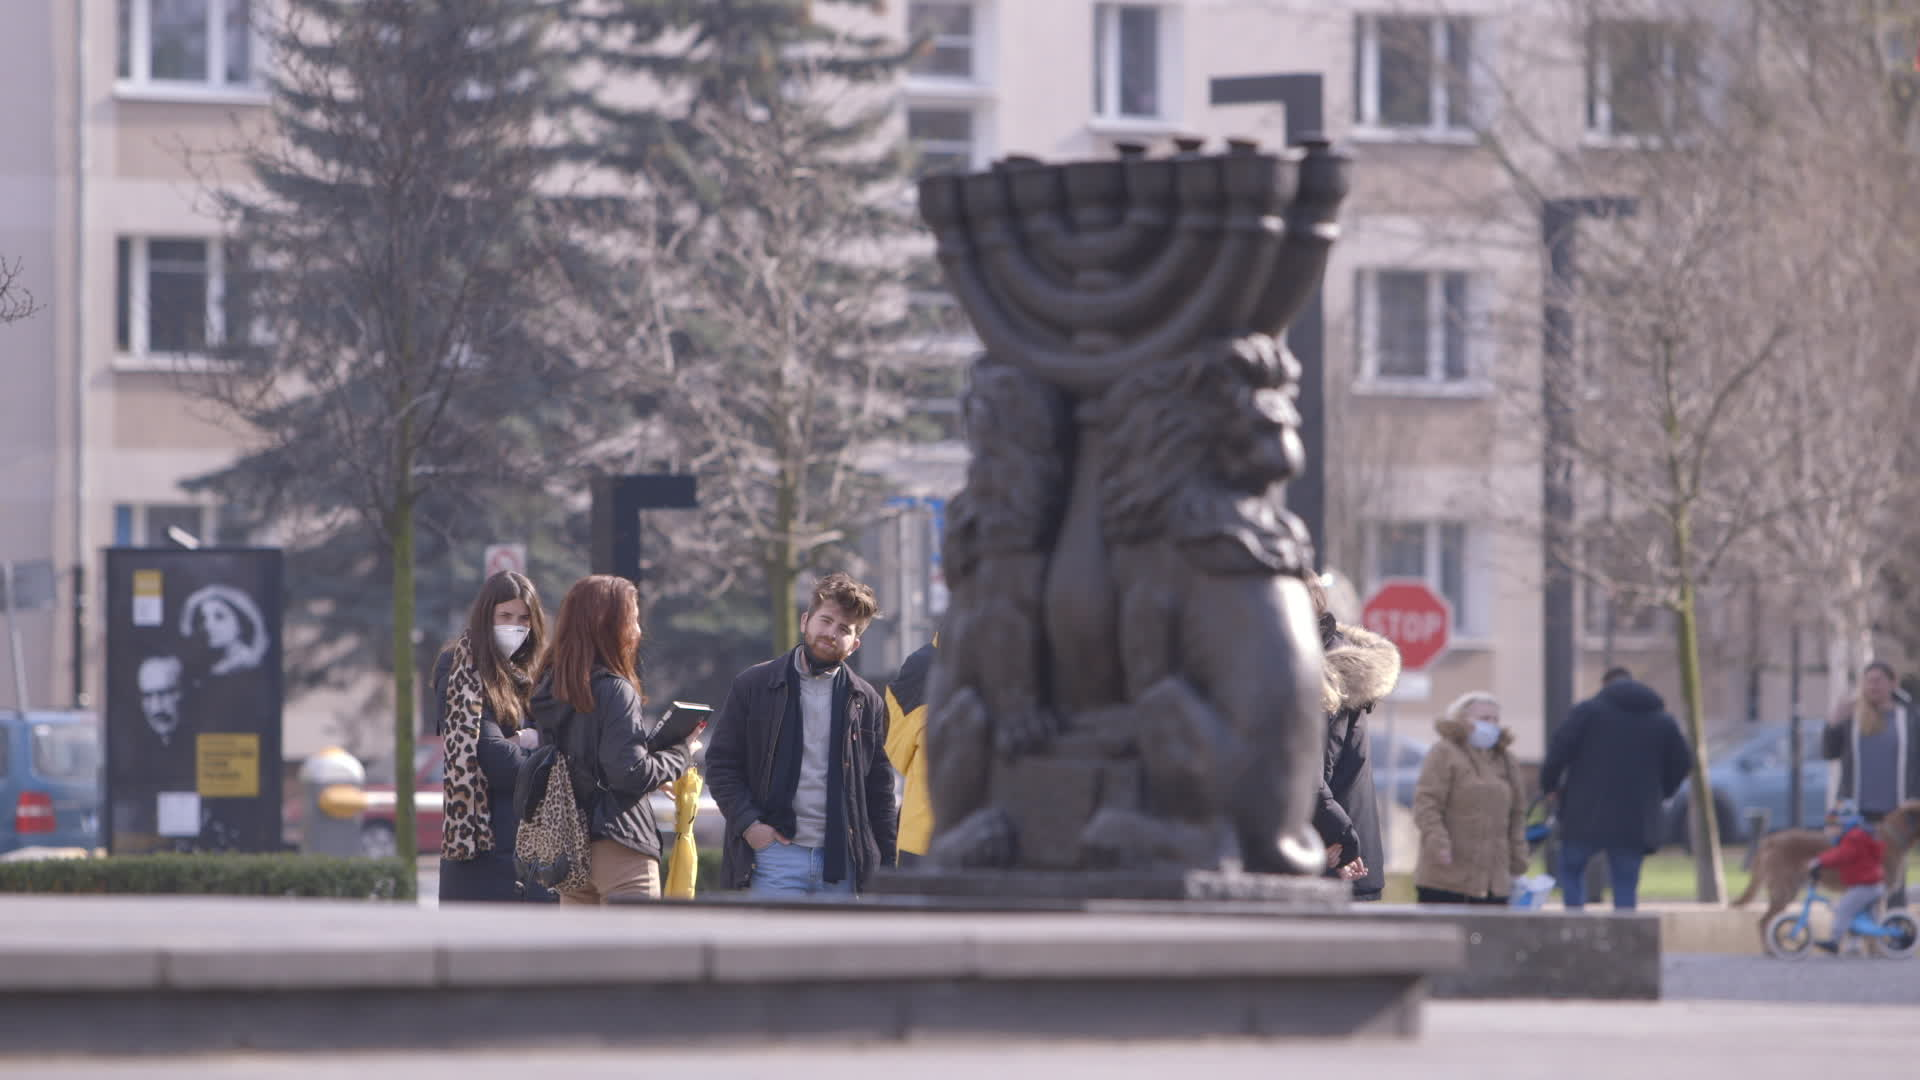 Warsaw Ghetto Uprising Monument ahead of 78th Anniversary